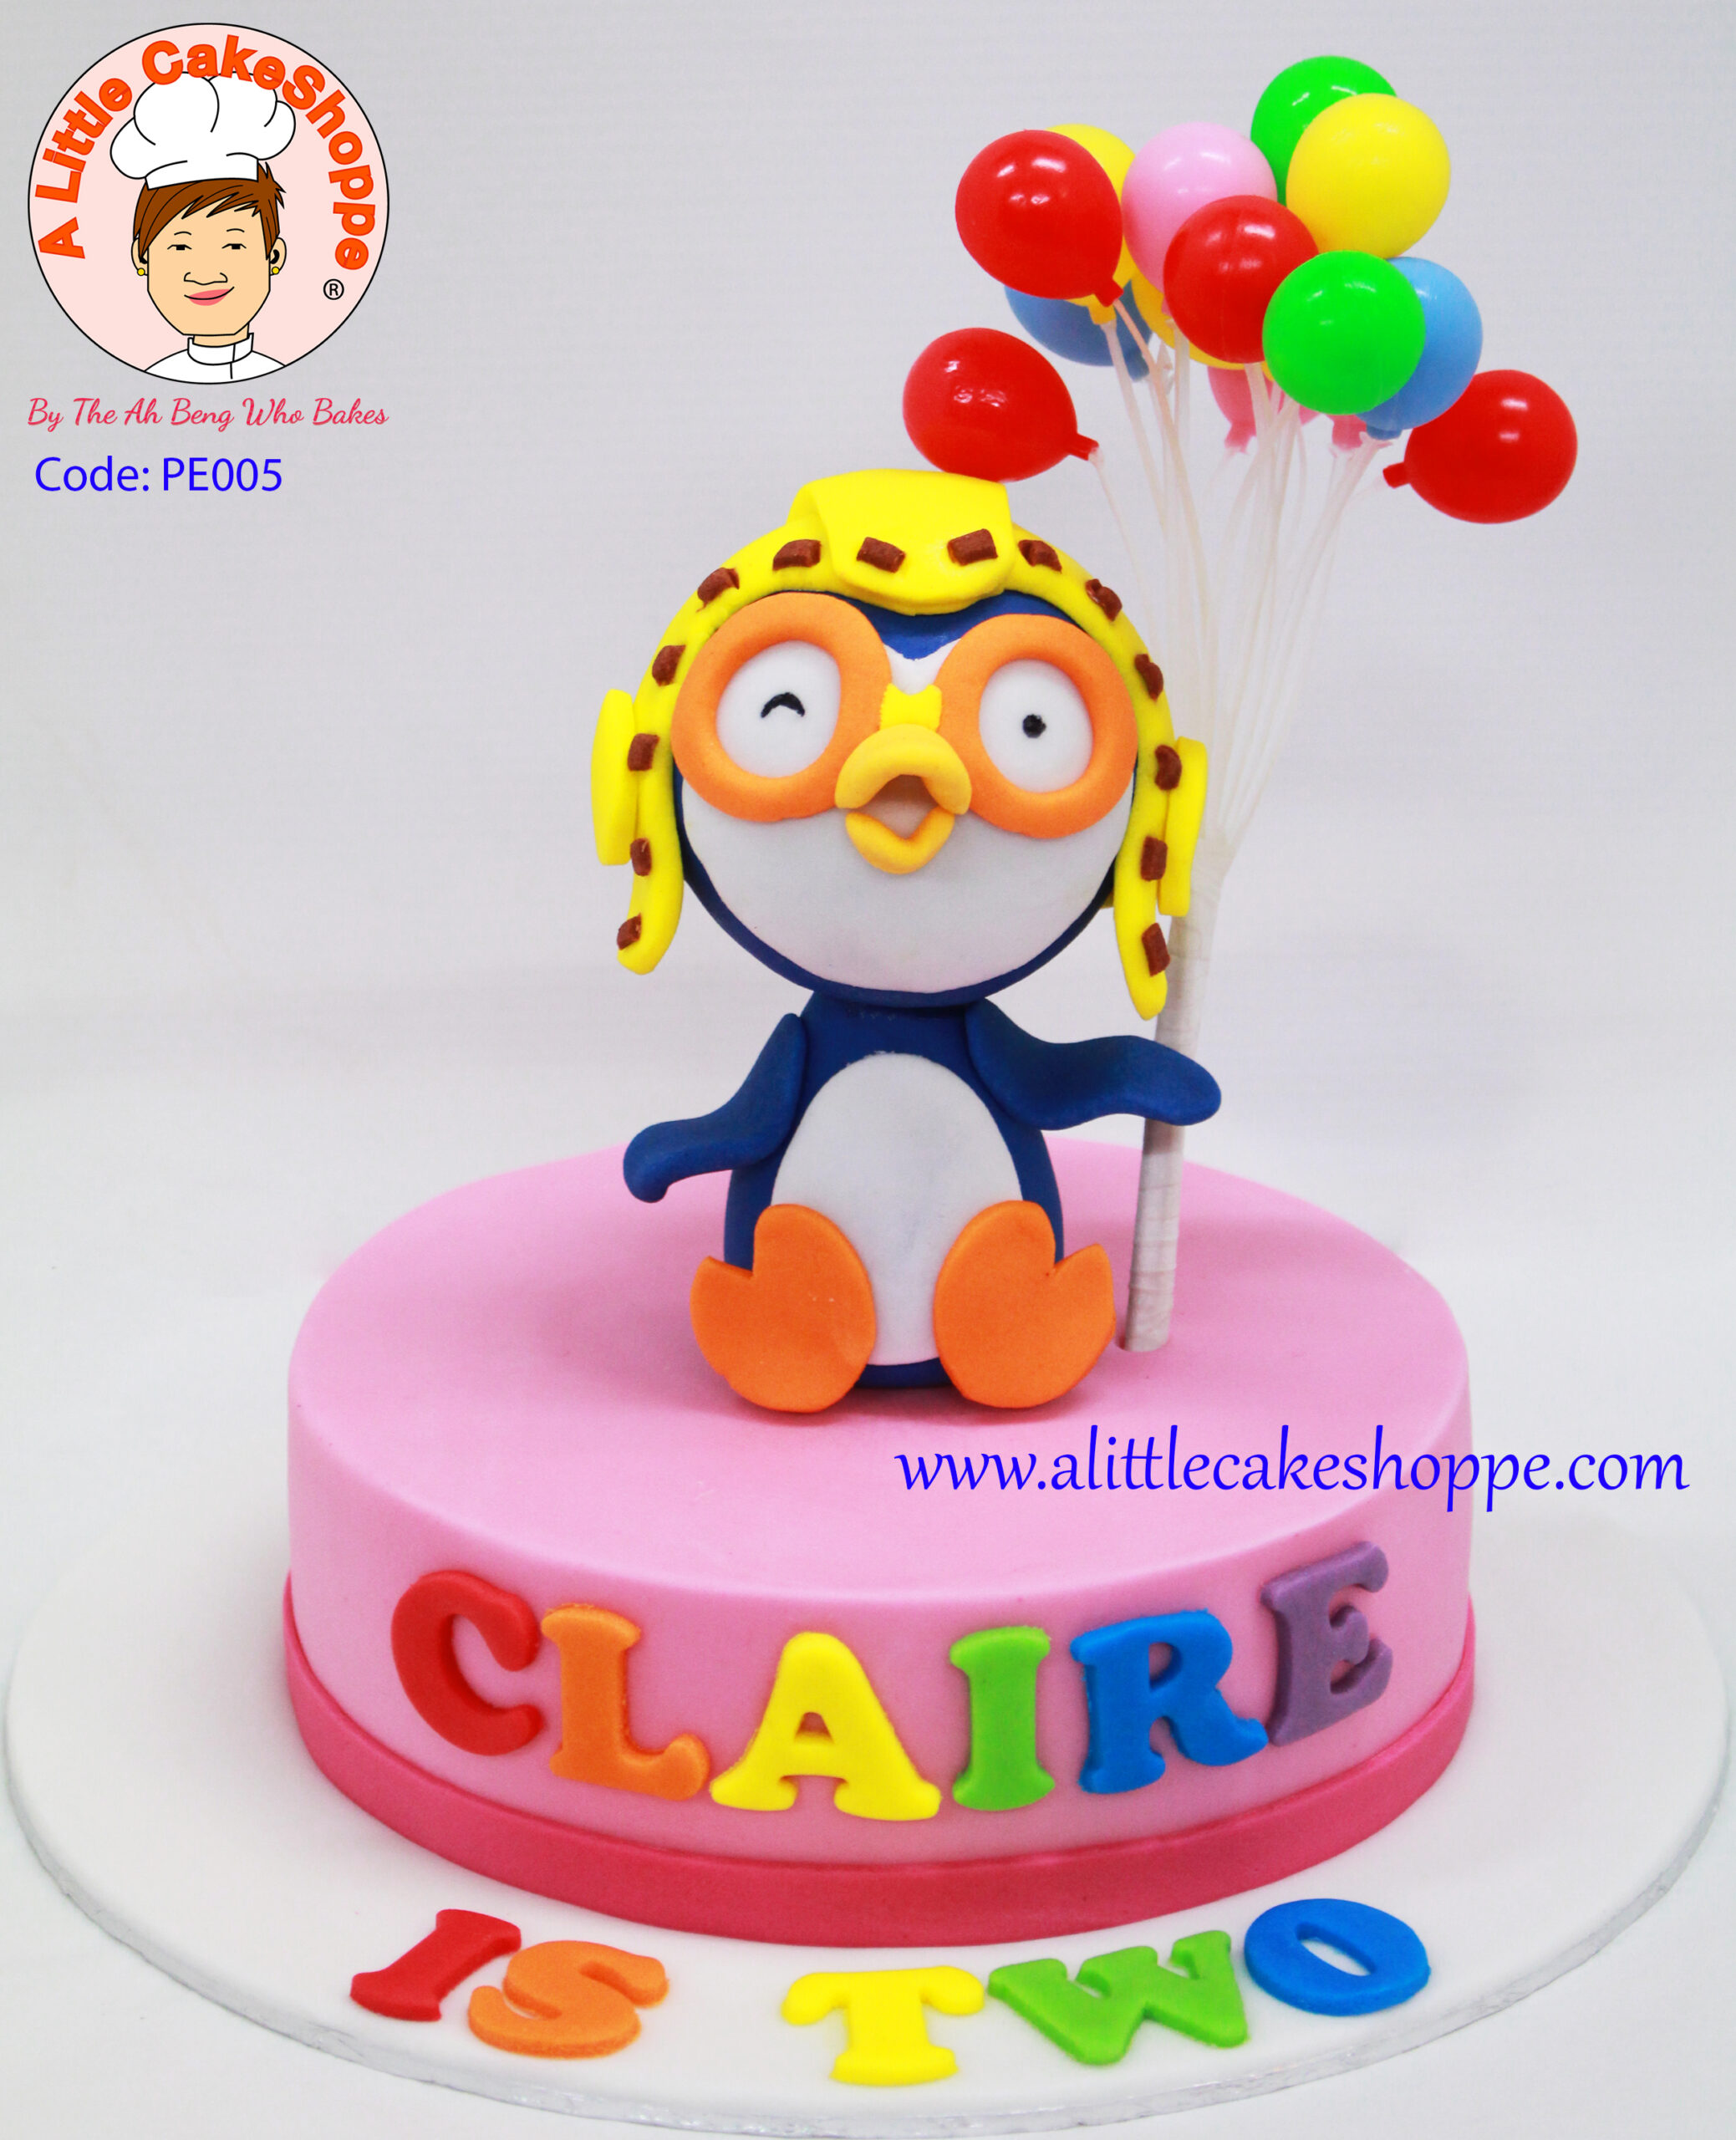 Best Customised Cake Shop Singapore custom cake 2D 3D birthday cake cupcakes desserts wedding corporate events anniversary 1st birthday 21st birthday fondant fresh cream buttercream cakes alittlecakeshoppe a little cake shoppe compliments review singapore bakers SG cake shop cakeshop ah beng who bakes pororo